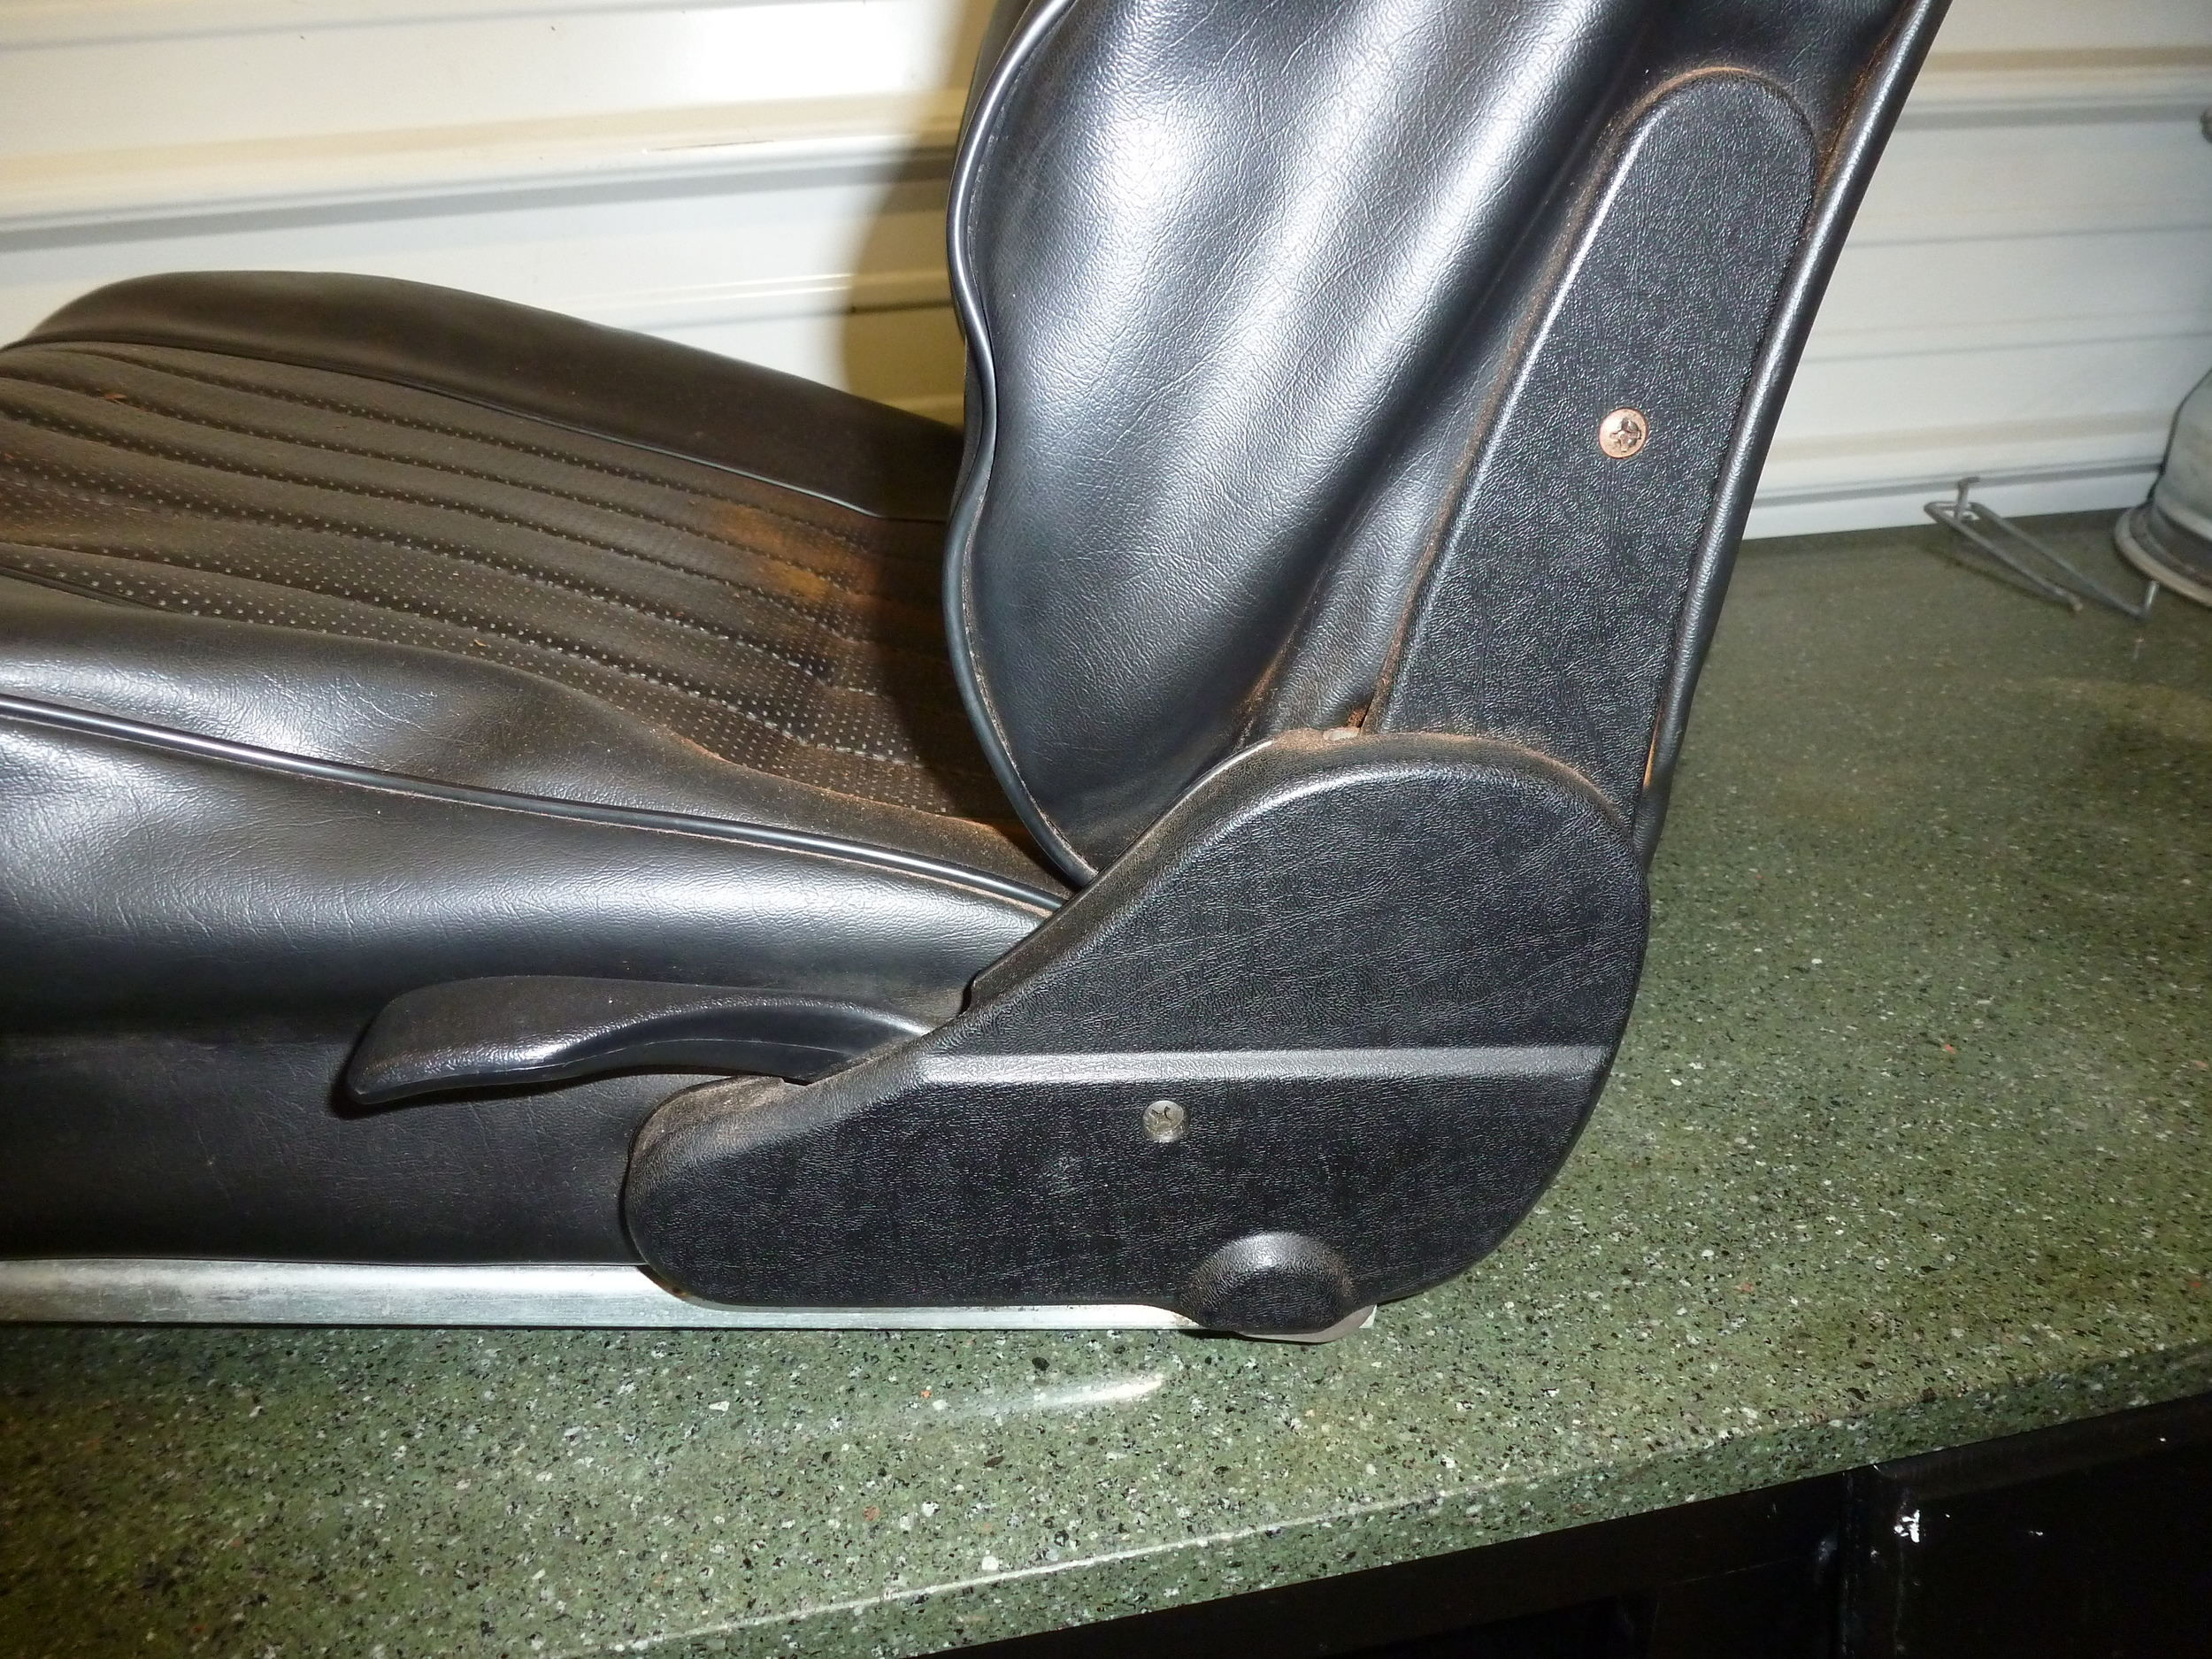 From this photo one can see the effects of the seat padding breaking down.